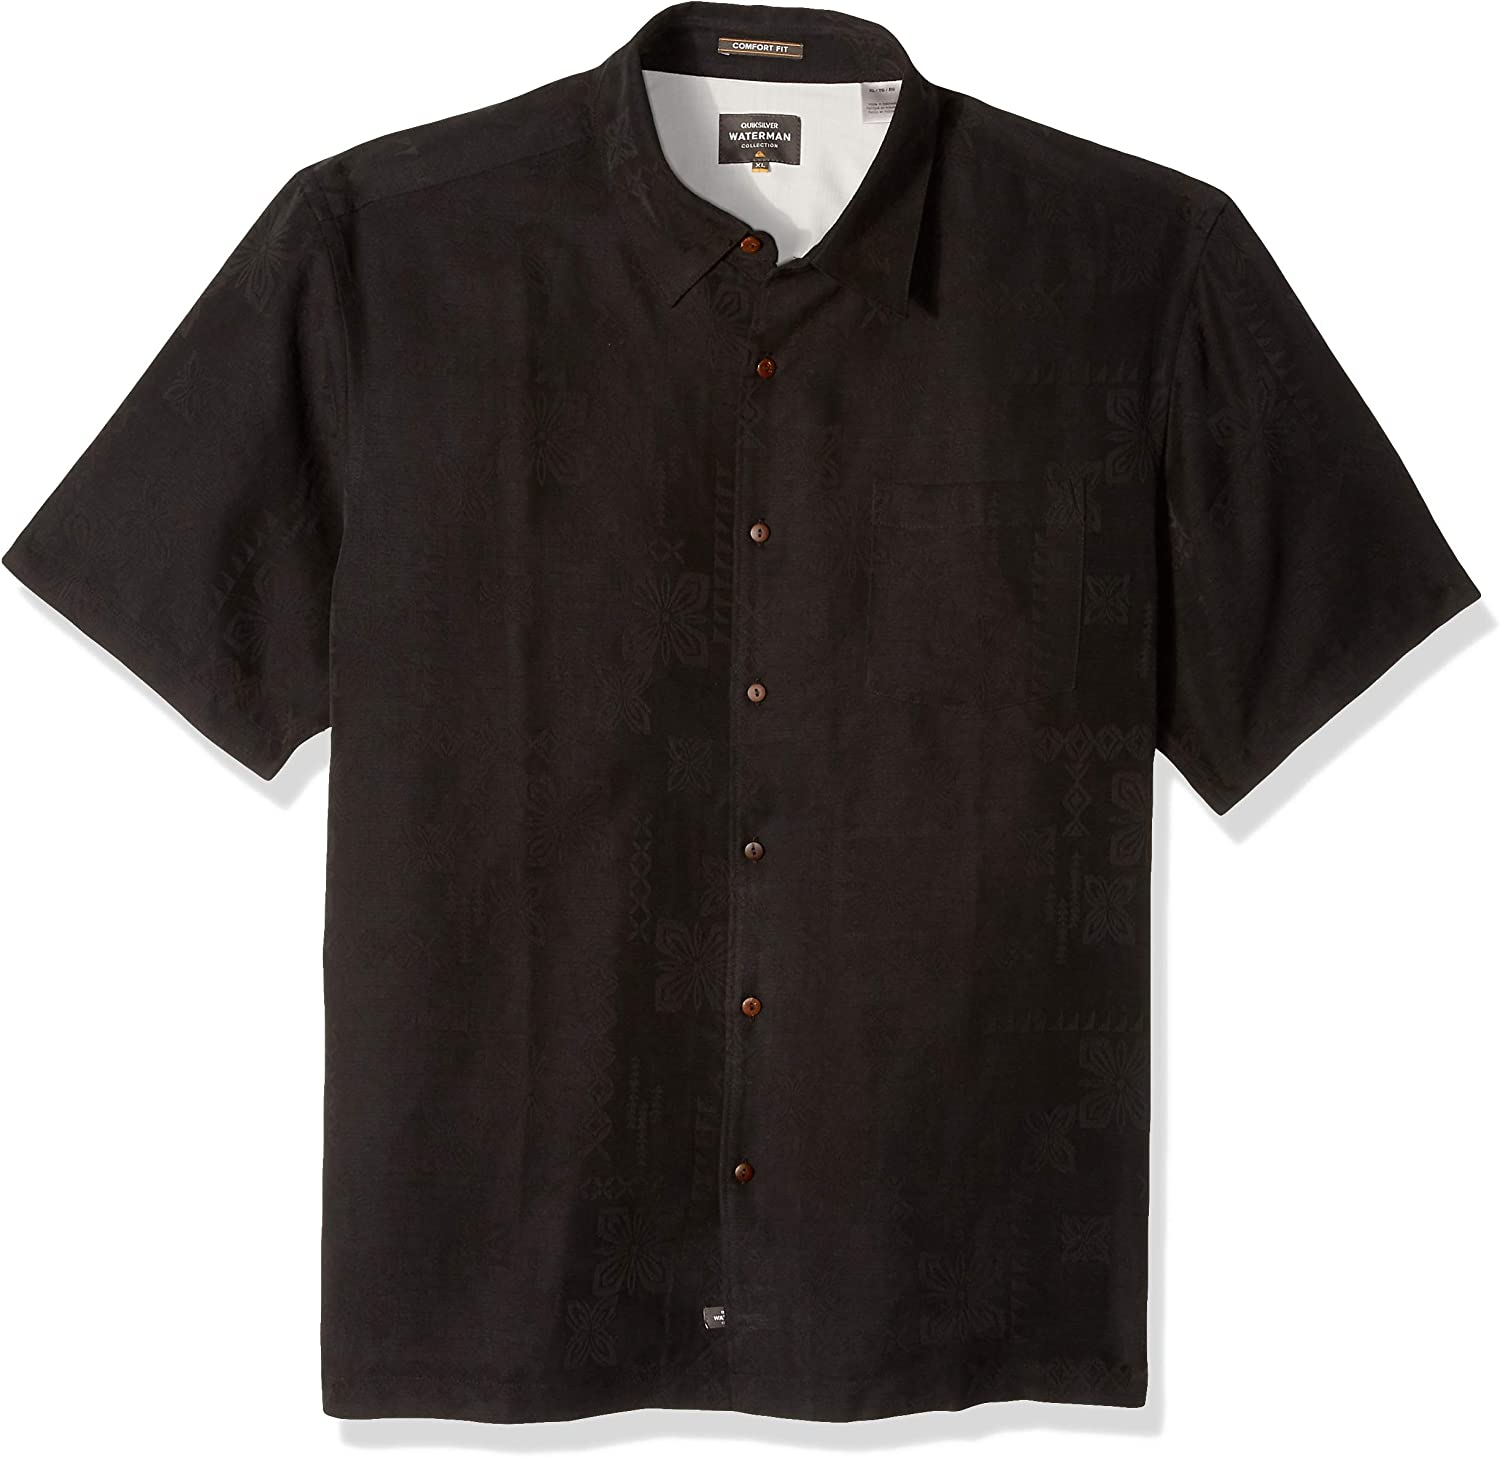 Quiksilver Men's Today's only Kelpies Bay Shirt Down Button